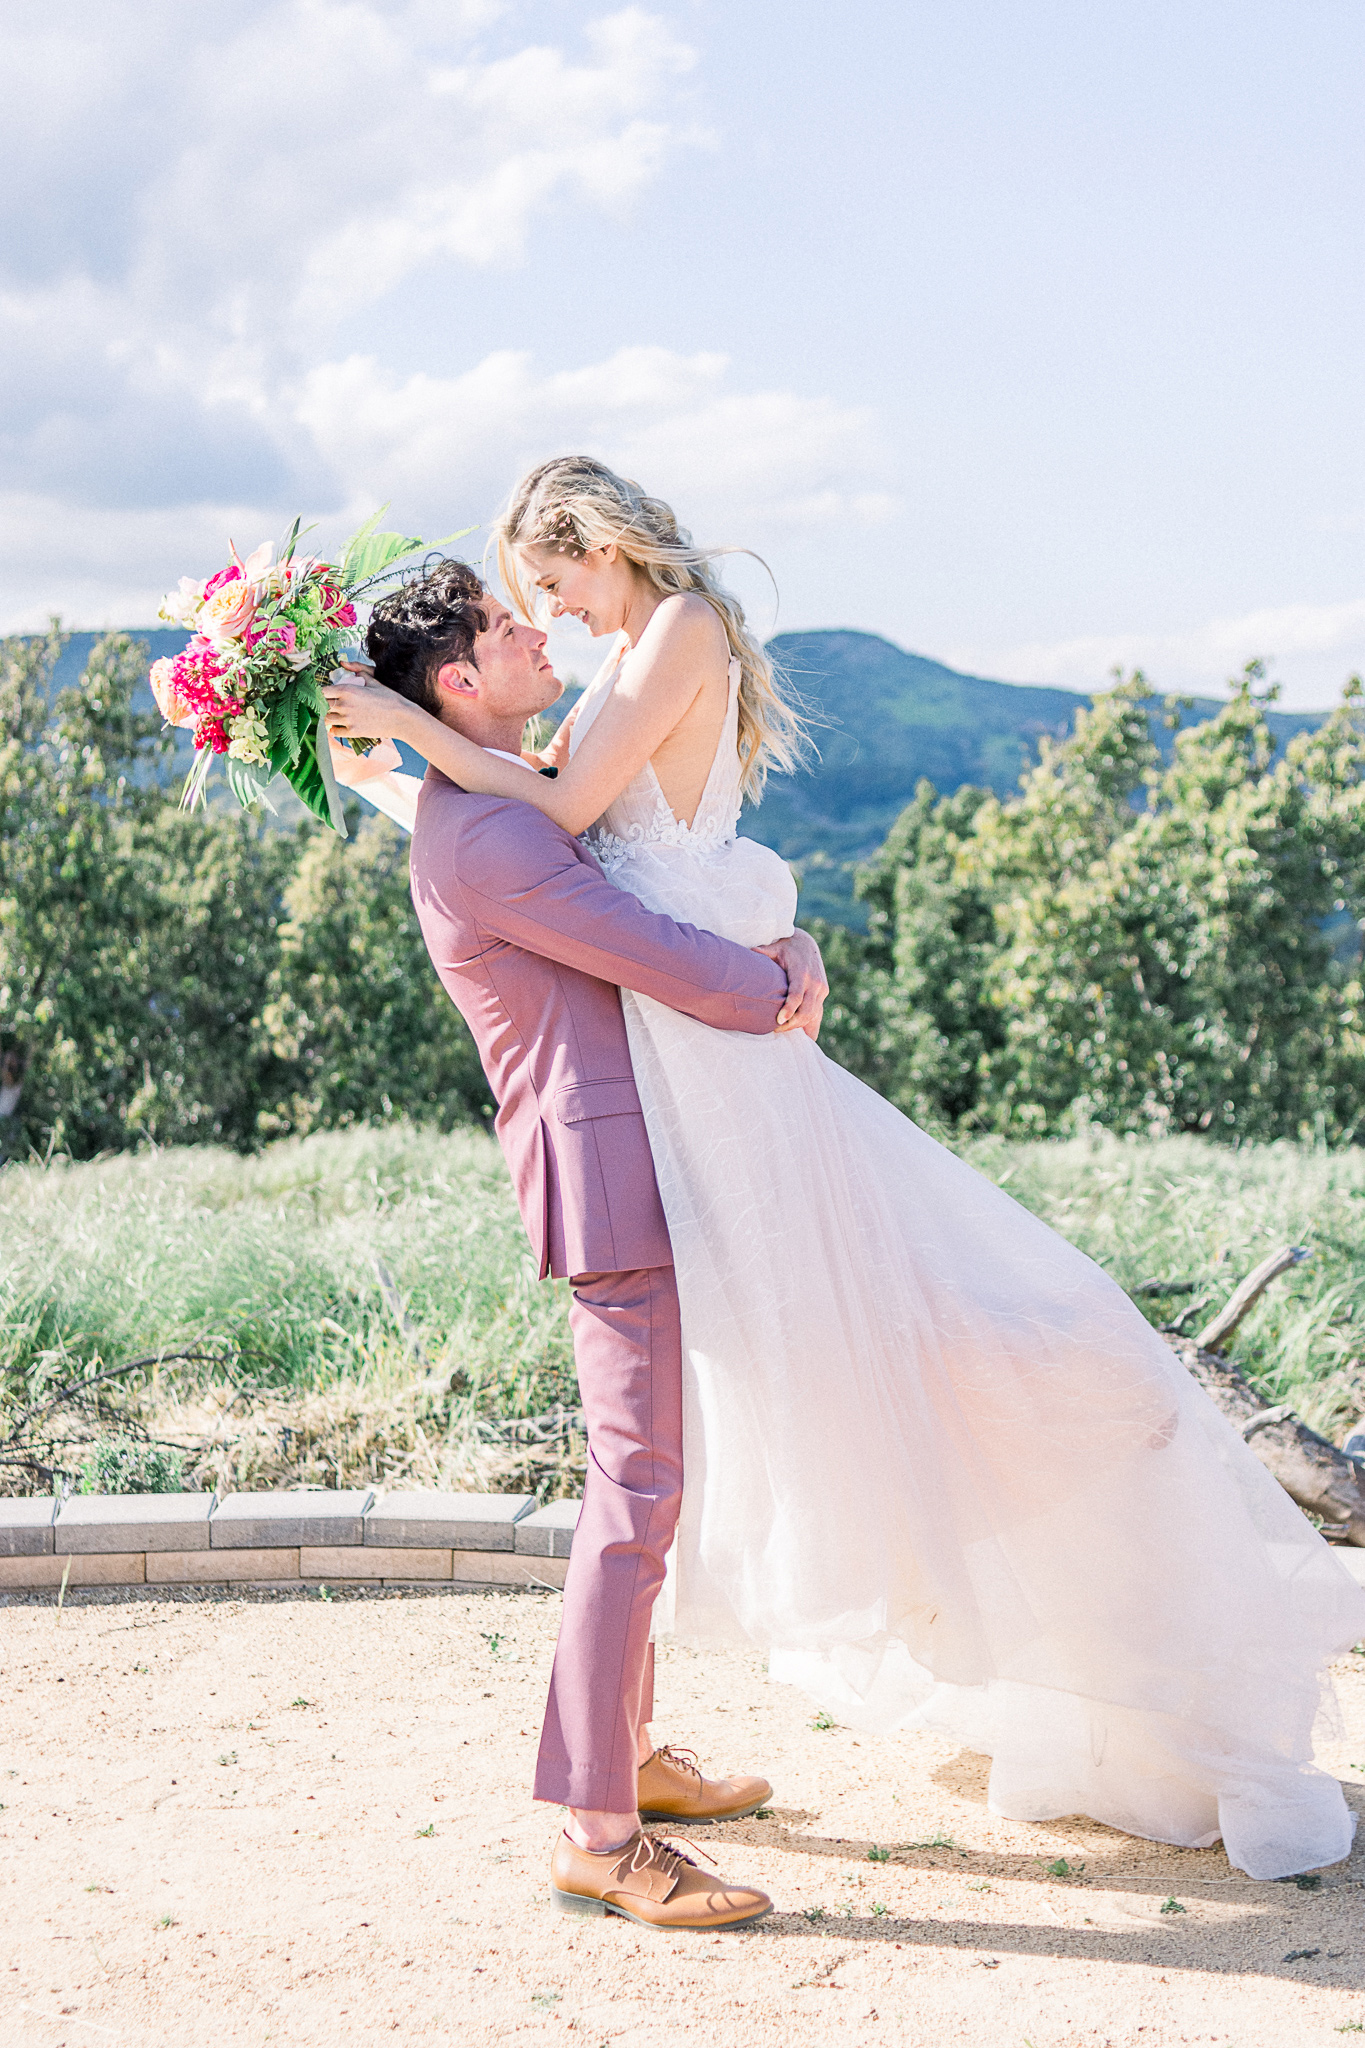 emerald-peak-temecula-wedding-groom-holding-up-bride-bride-in-a-blush-toned-tulle-ballgown-with-straps-groom-in-a-rose-pink-suit-with-a-green-velvet-bow-tie